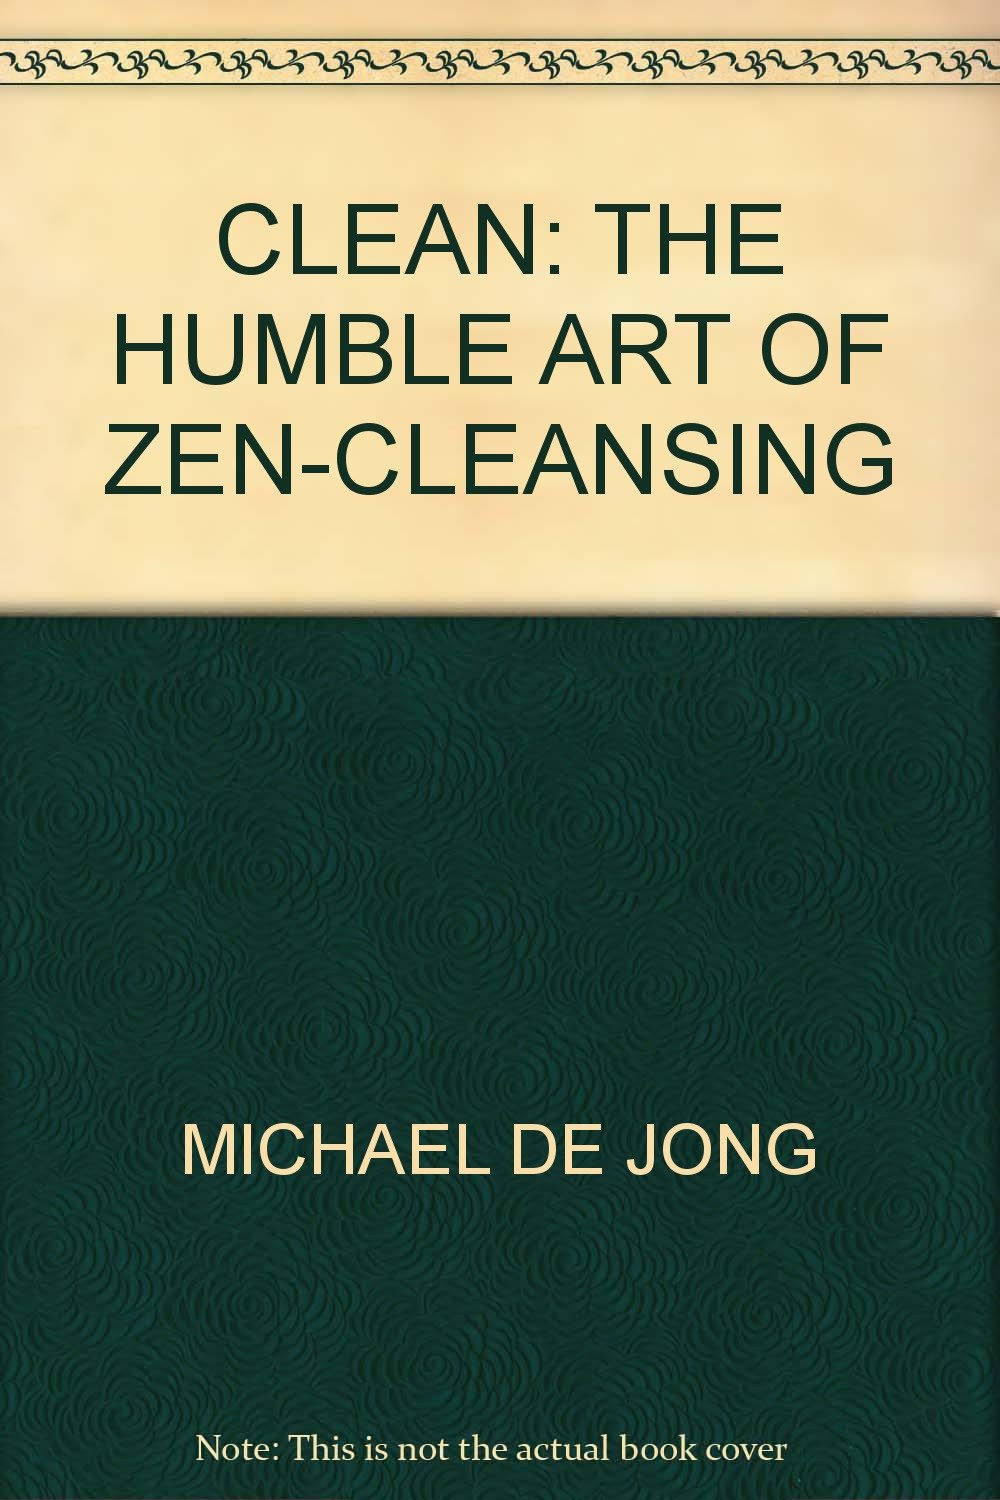 Clean: The Humble Art of Zen-Cleansing PDF